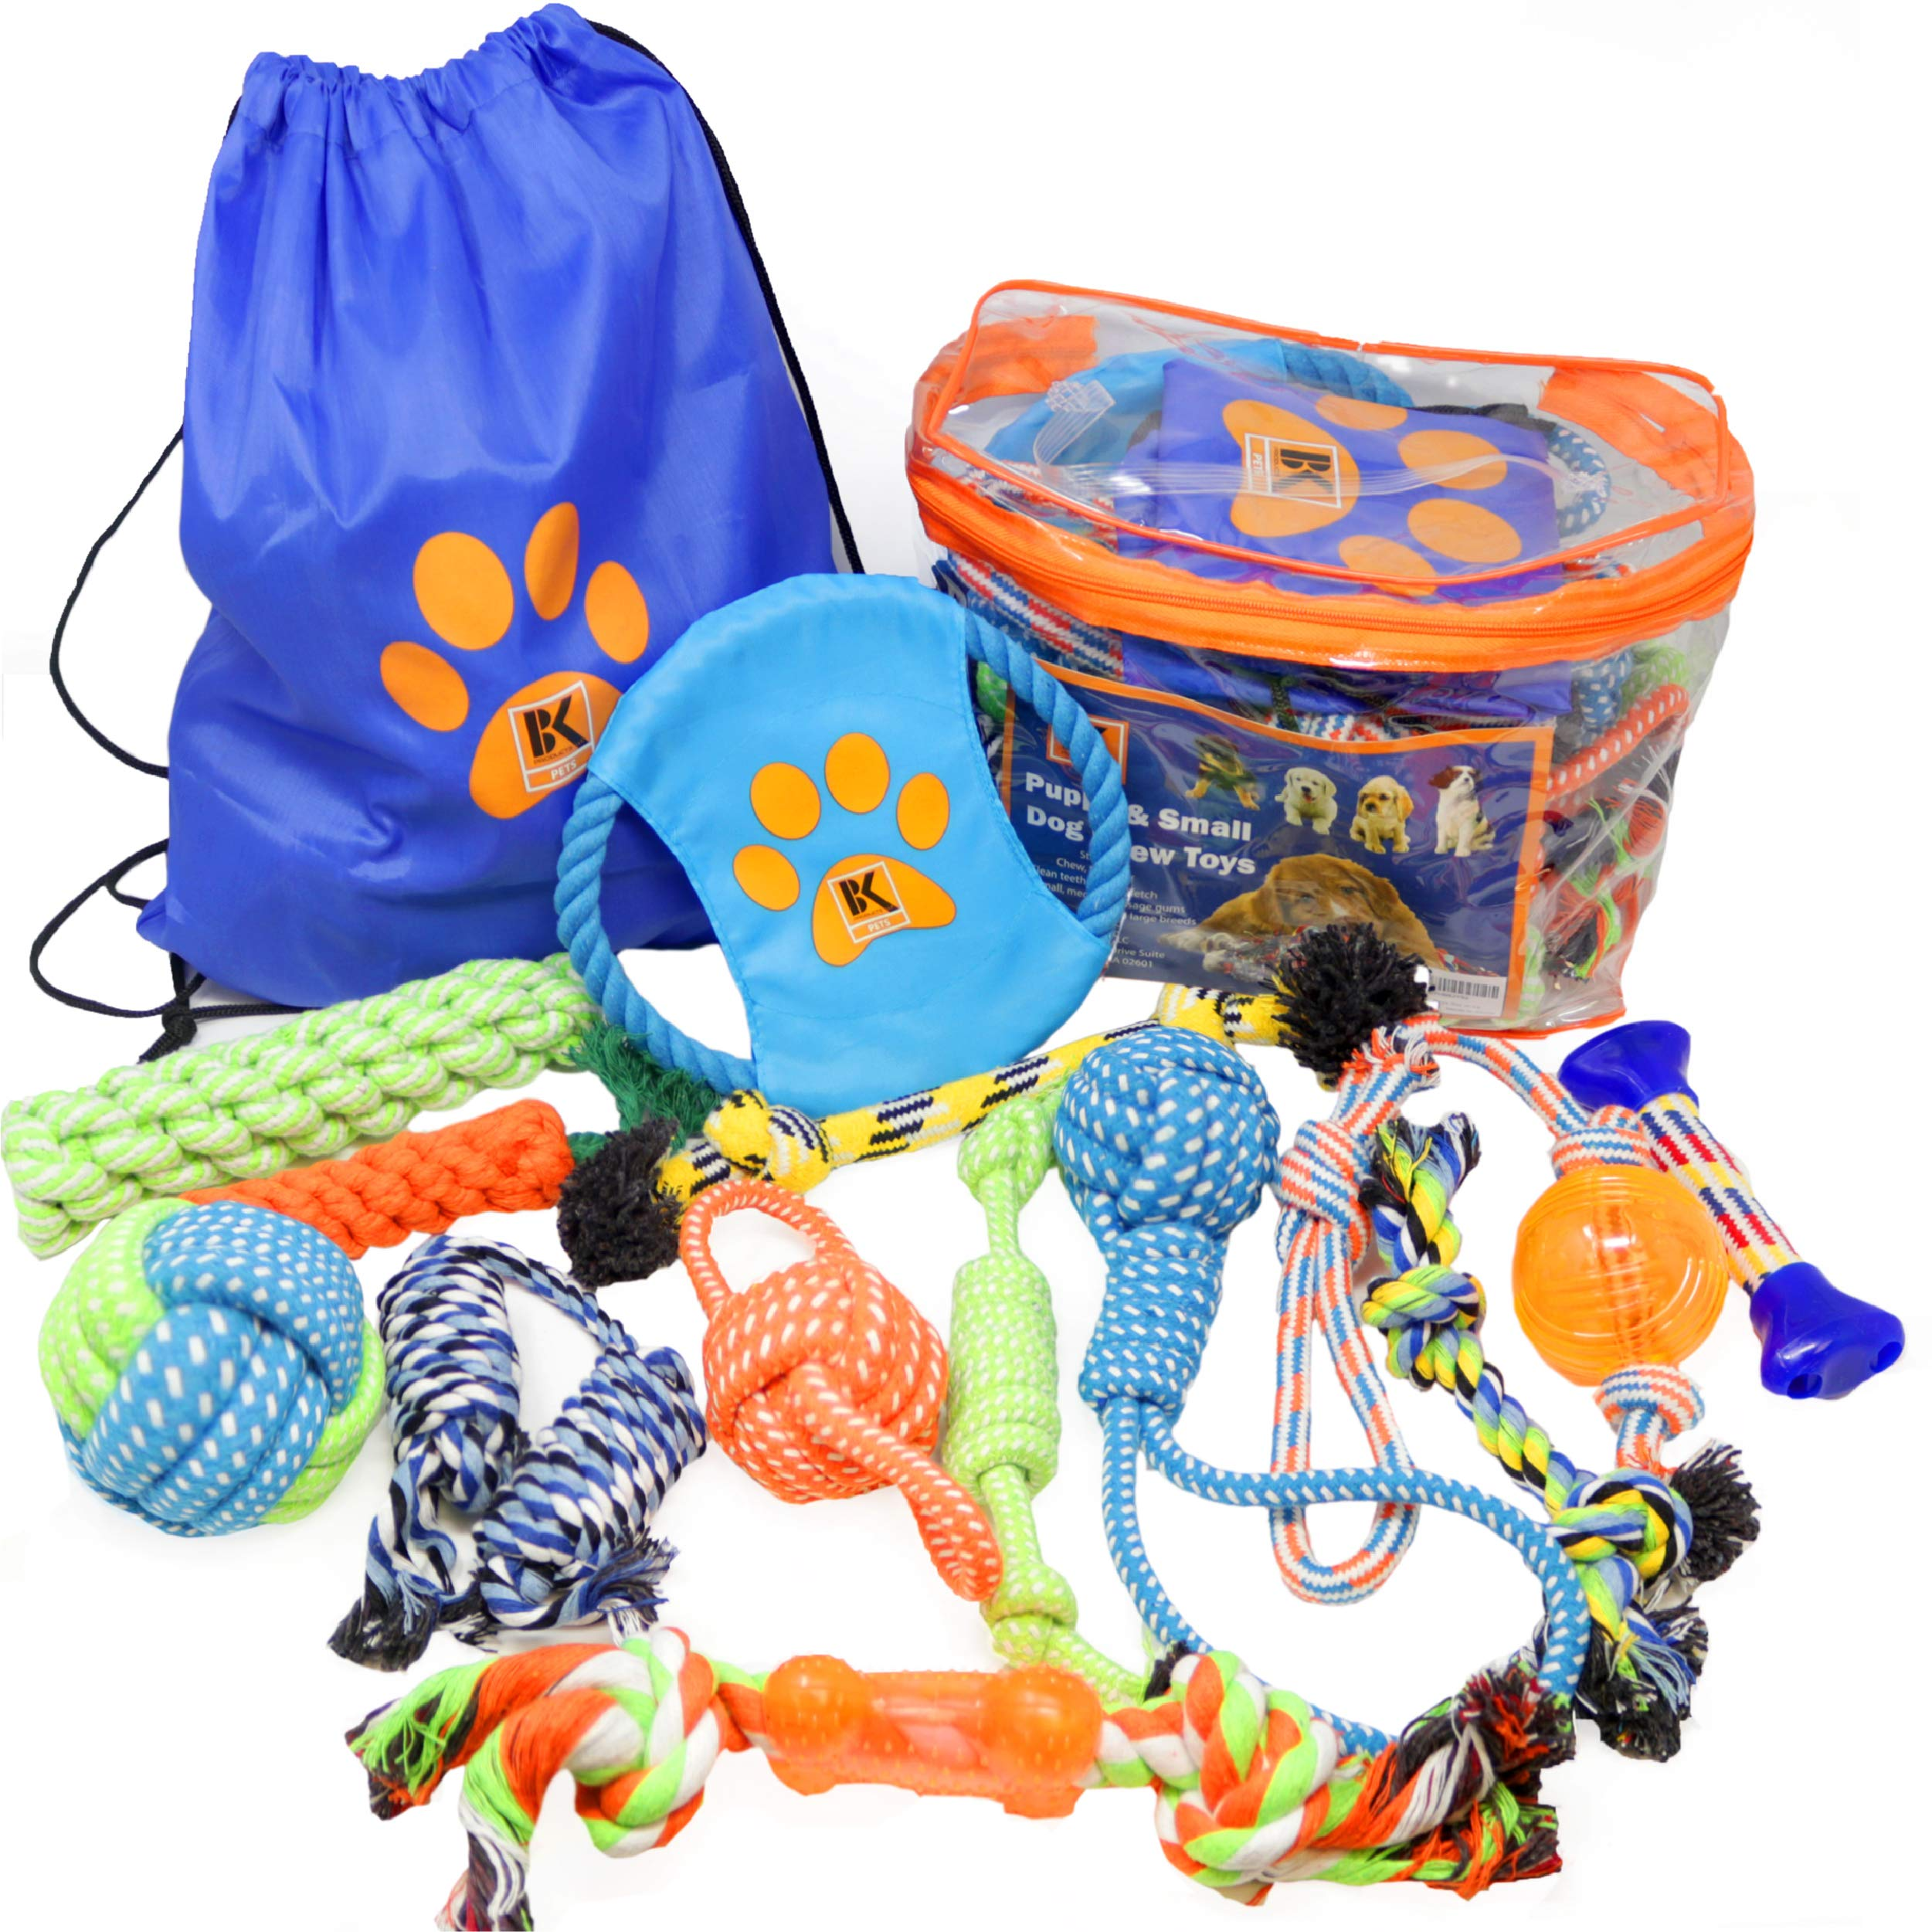 BK PRODUCTS LLC Dog Toys - 13 Puppy Dog Rope Toys - Chew Toy for Puppy Small and Medium Dogs - Puppy Chew Toys - Dog Toy Pack - Set of 13 Chew Toys and Teething Toys with Bonus Storage Bag